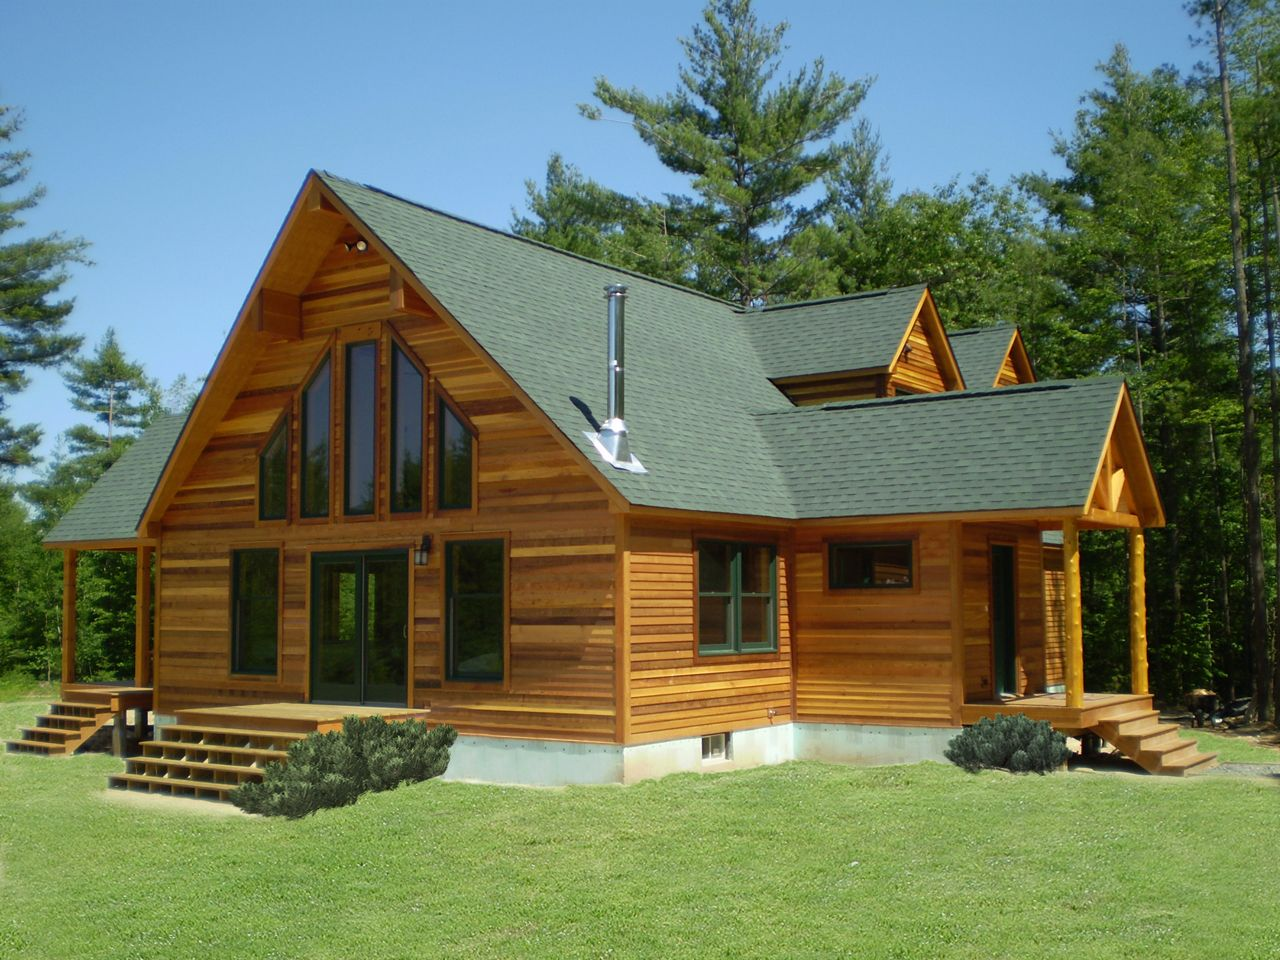 Modular Homes Is To Deliver Affordable Energyefficient Custom - Buy prefab homes